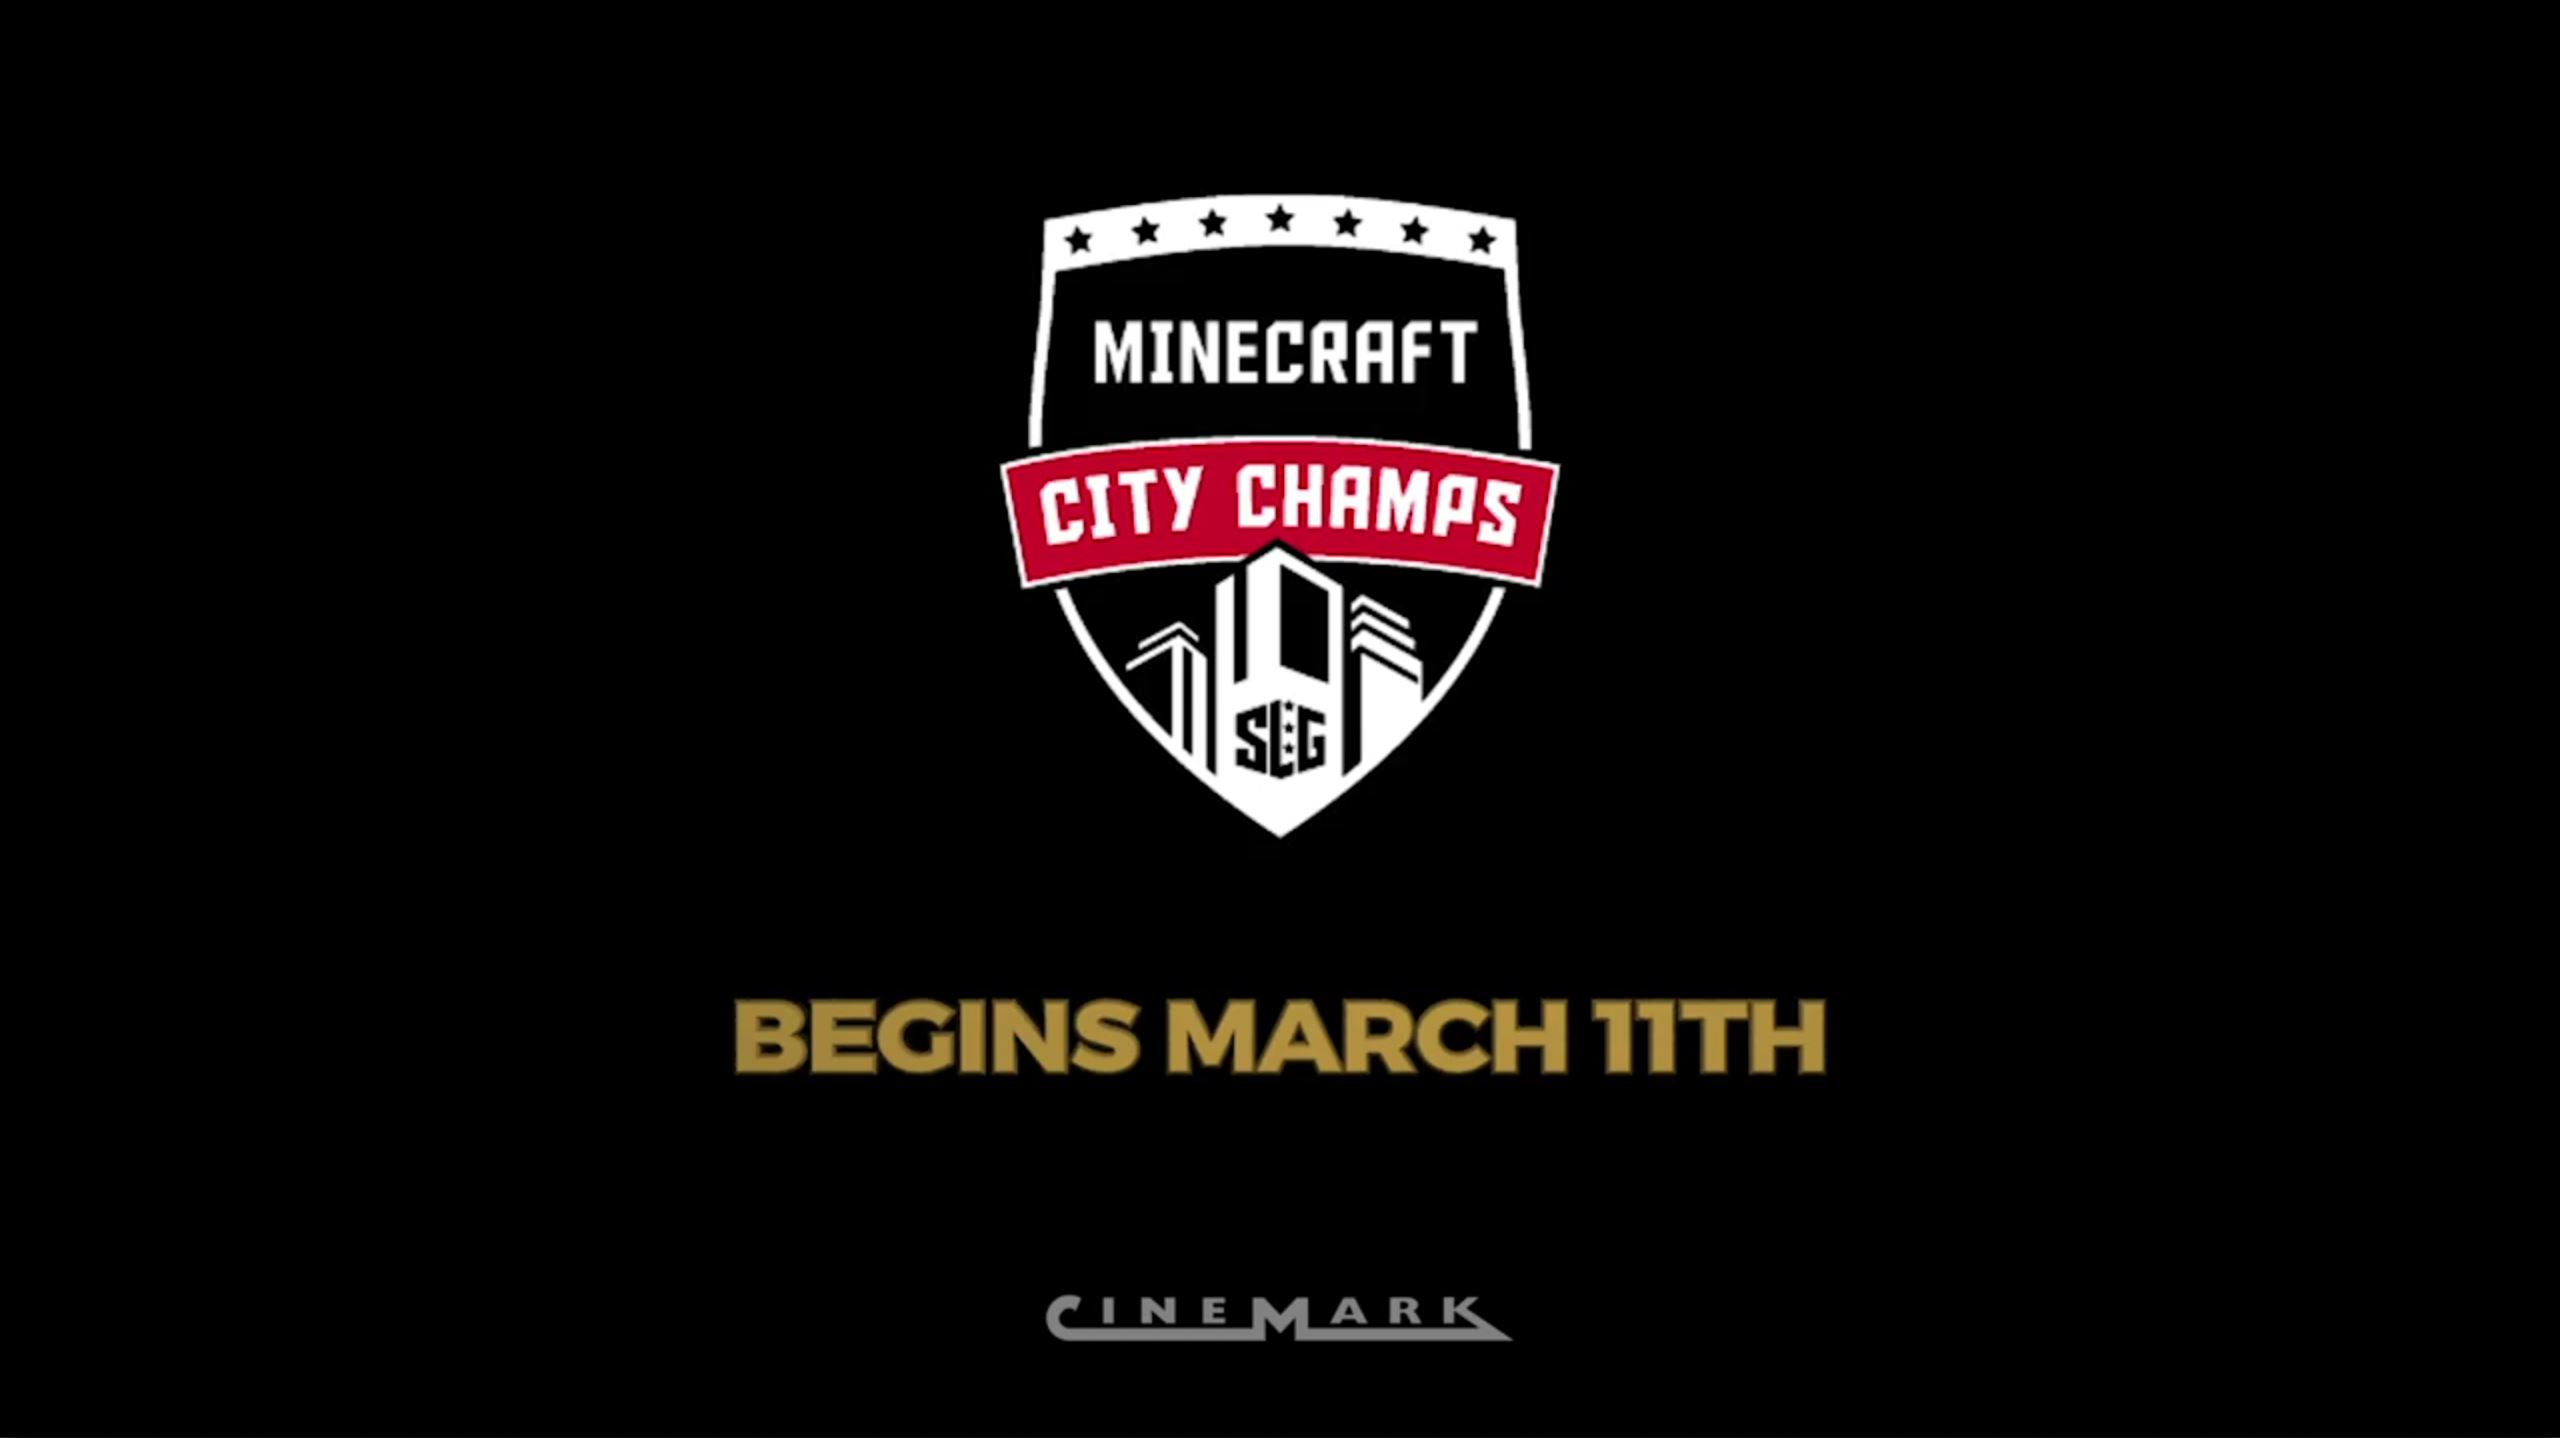 Play Minecraft on the Big Screen at Cinemark!